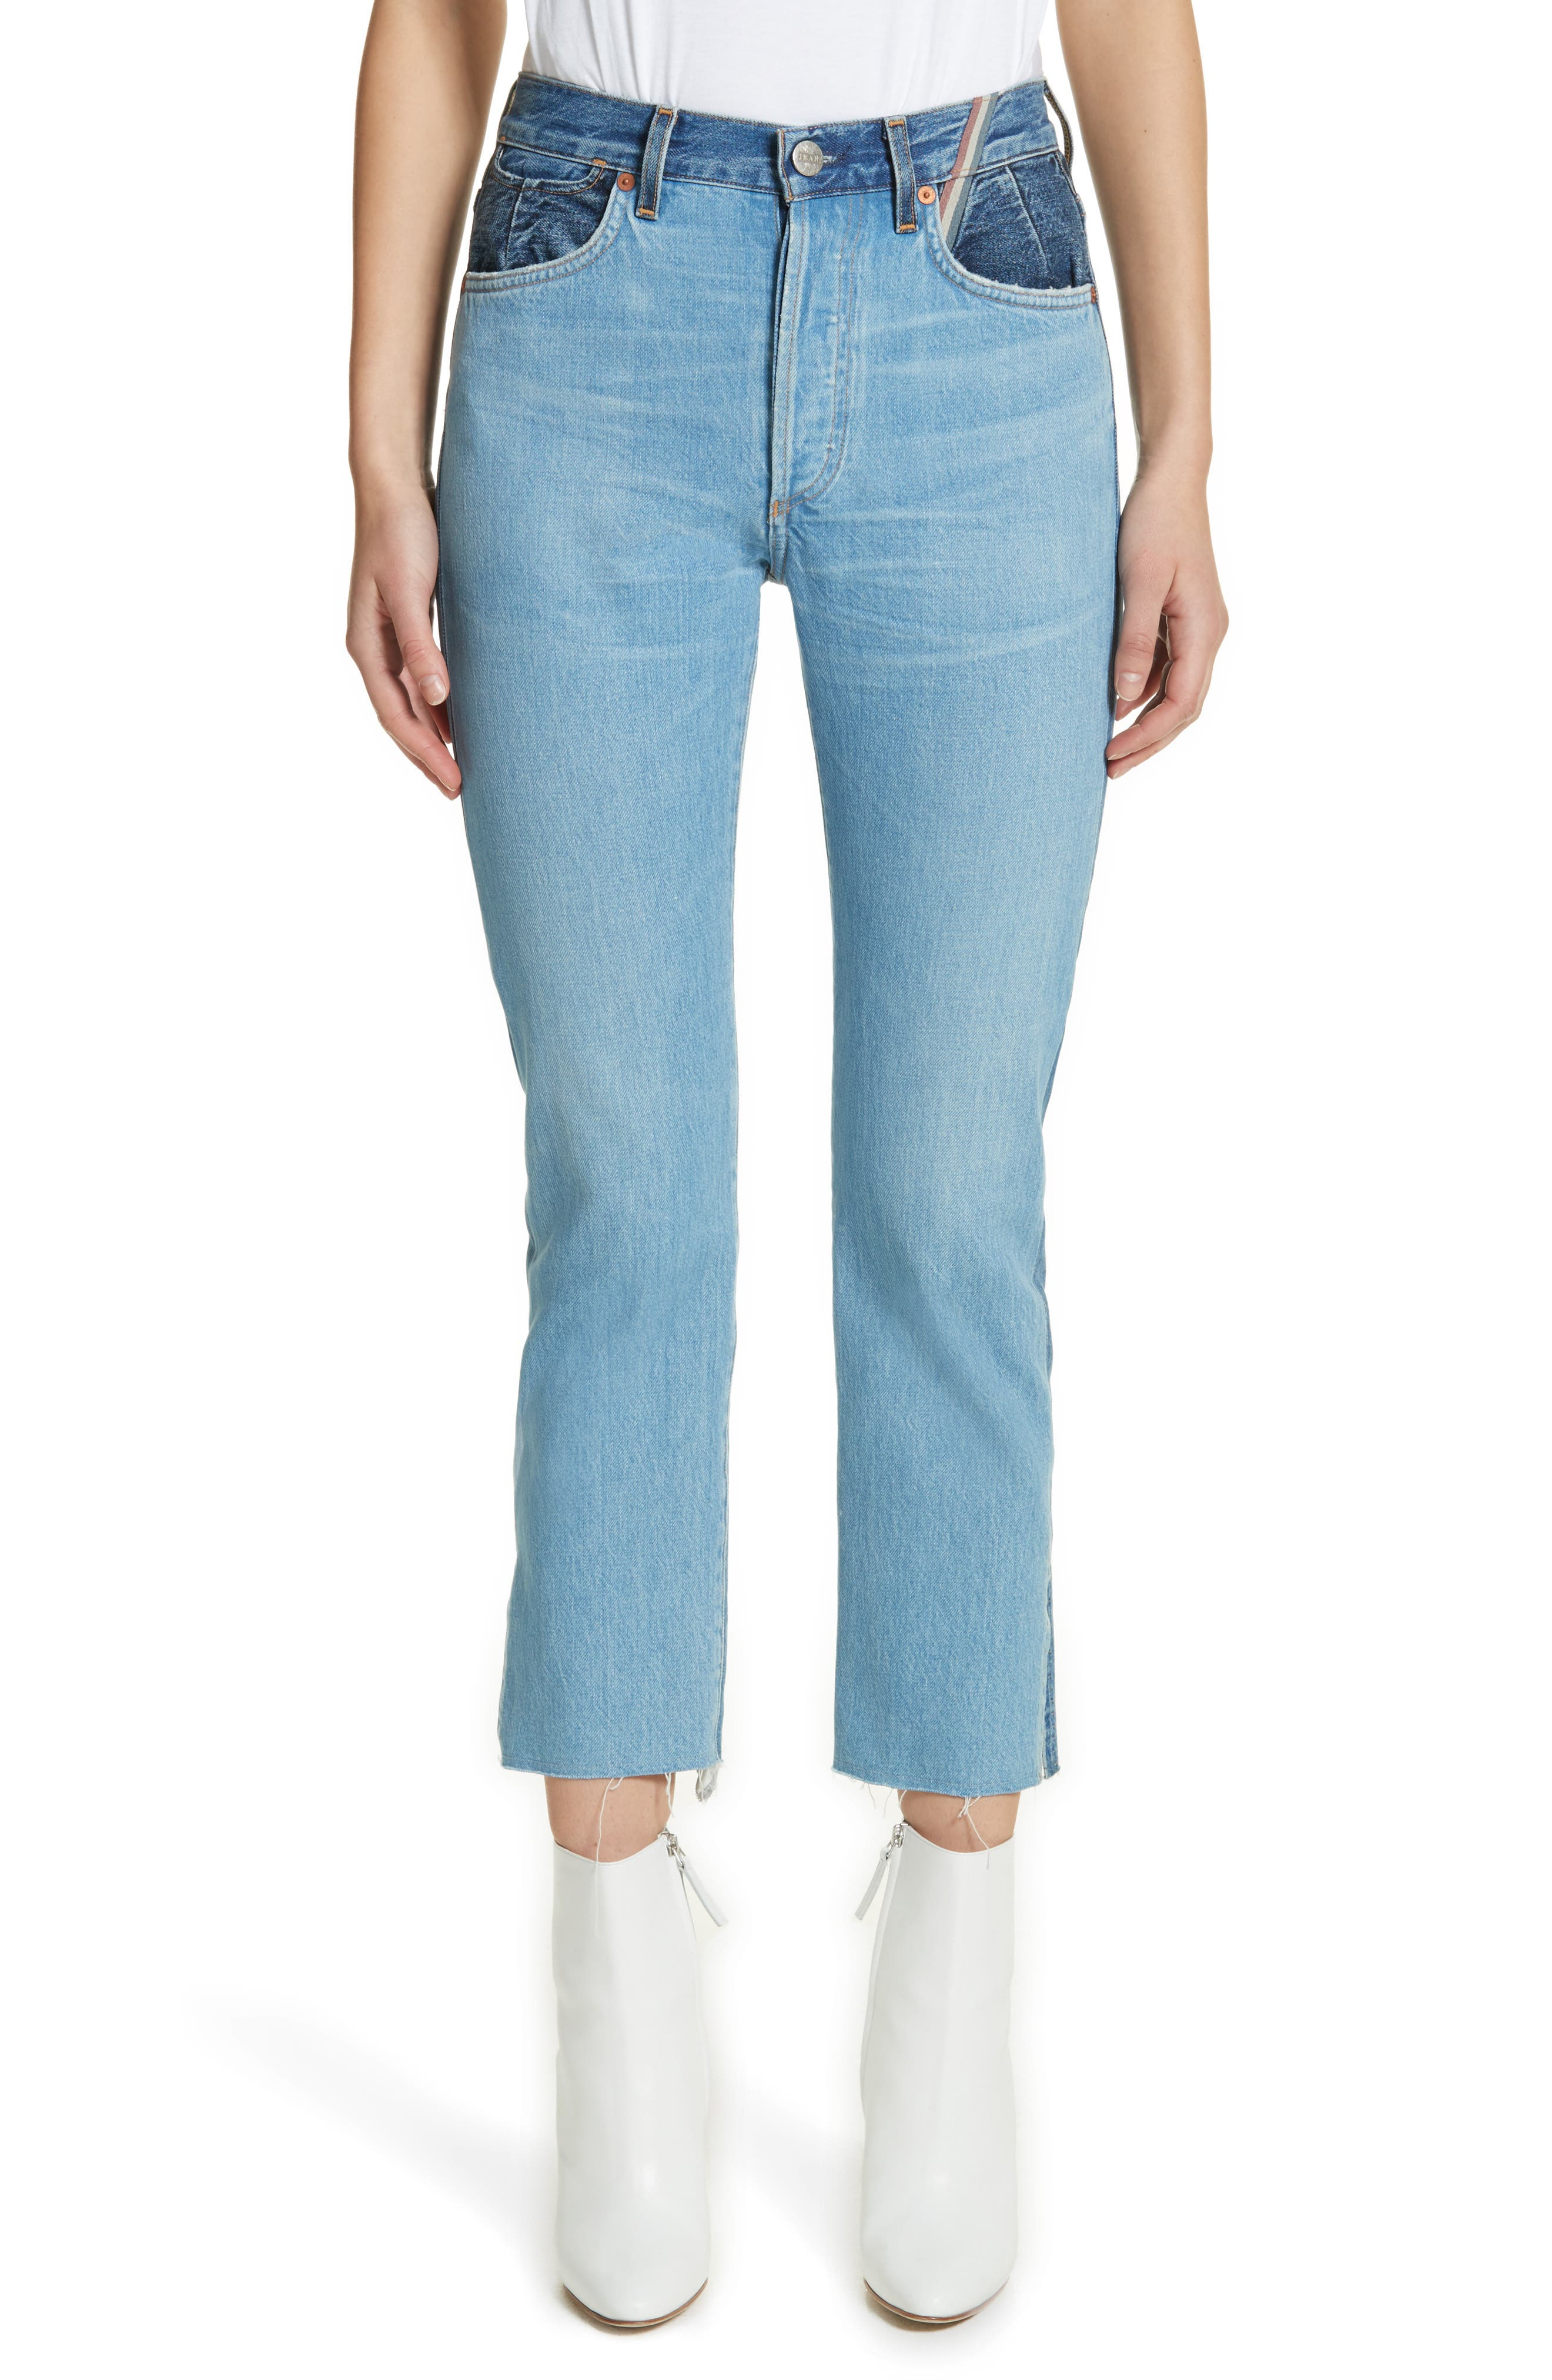 Hunter High Rise Straight Leg Crop Jeans,                         Main,                         color, Jagger